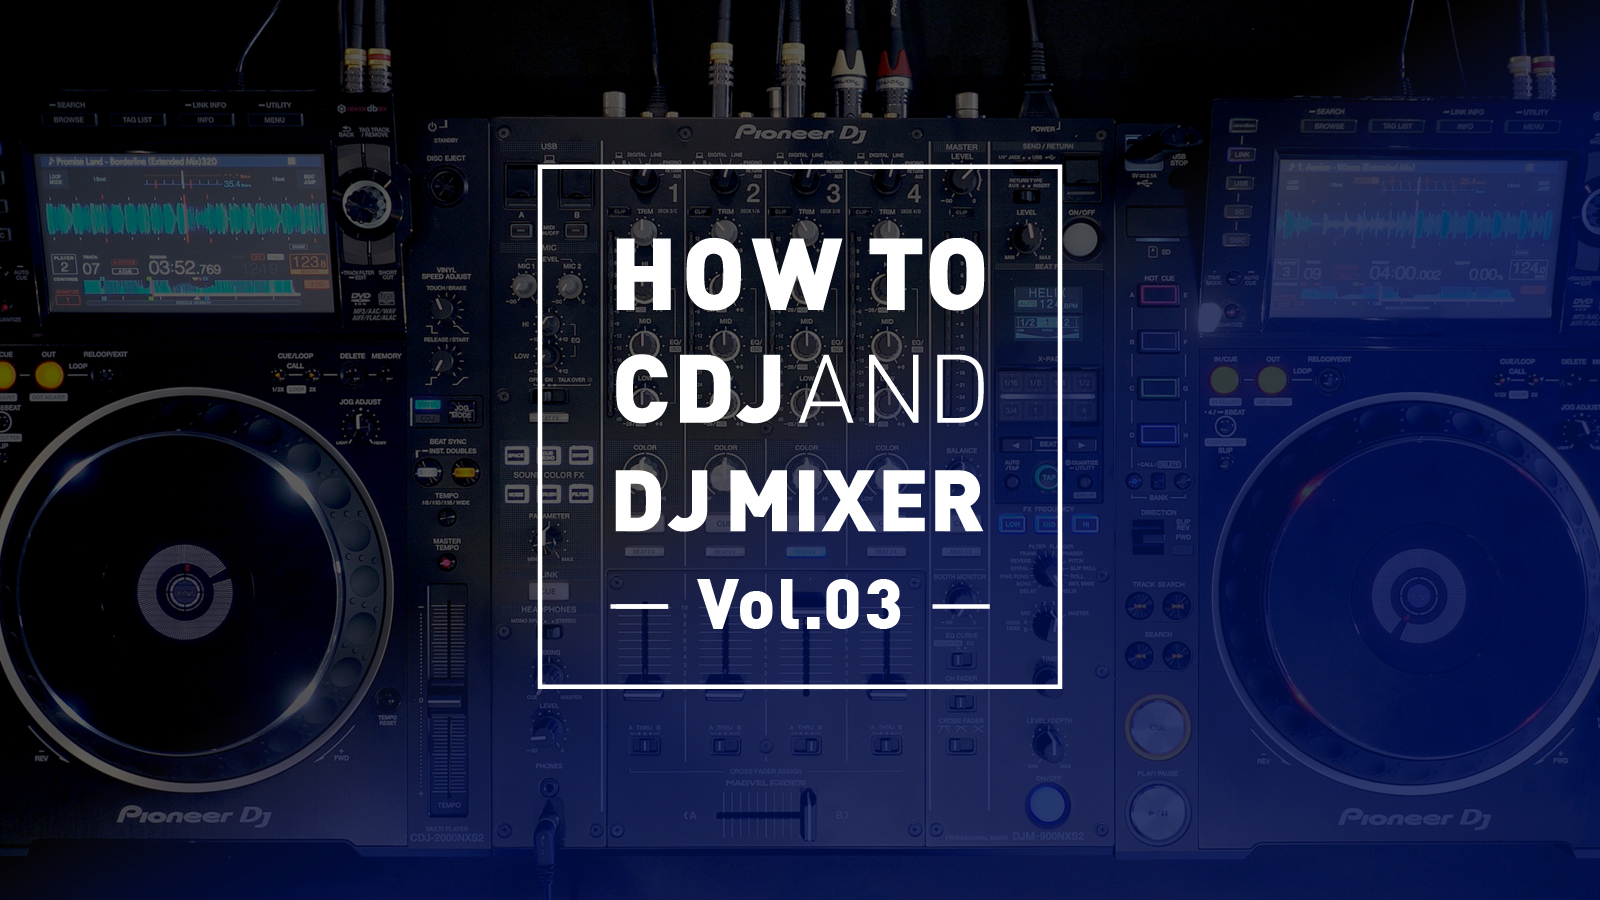 HOW TO CDJ AND DJ MIXER